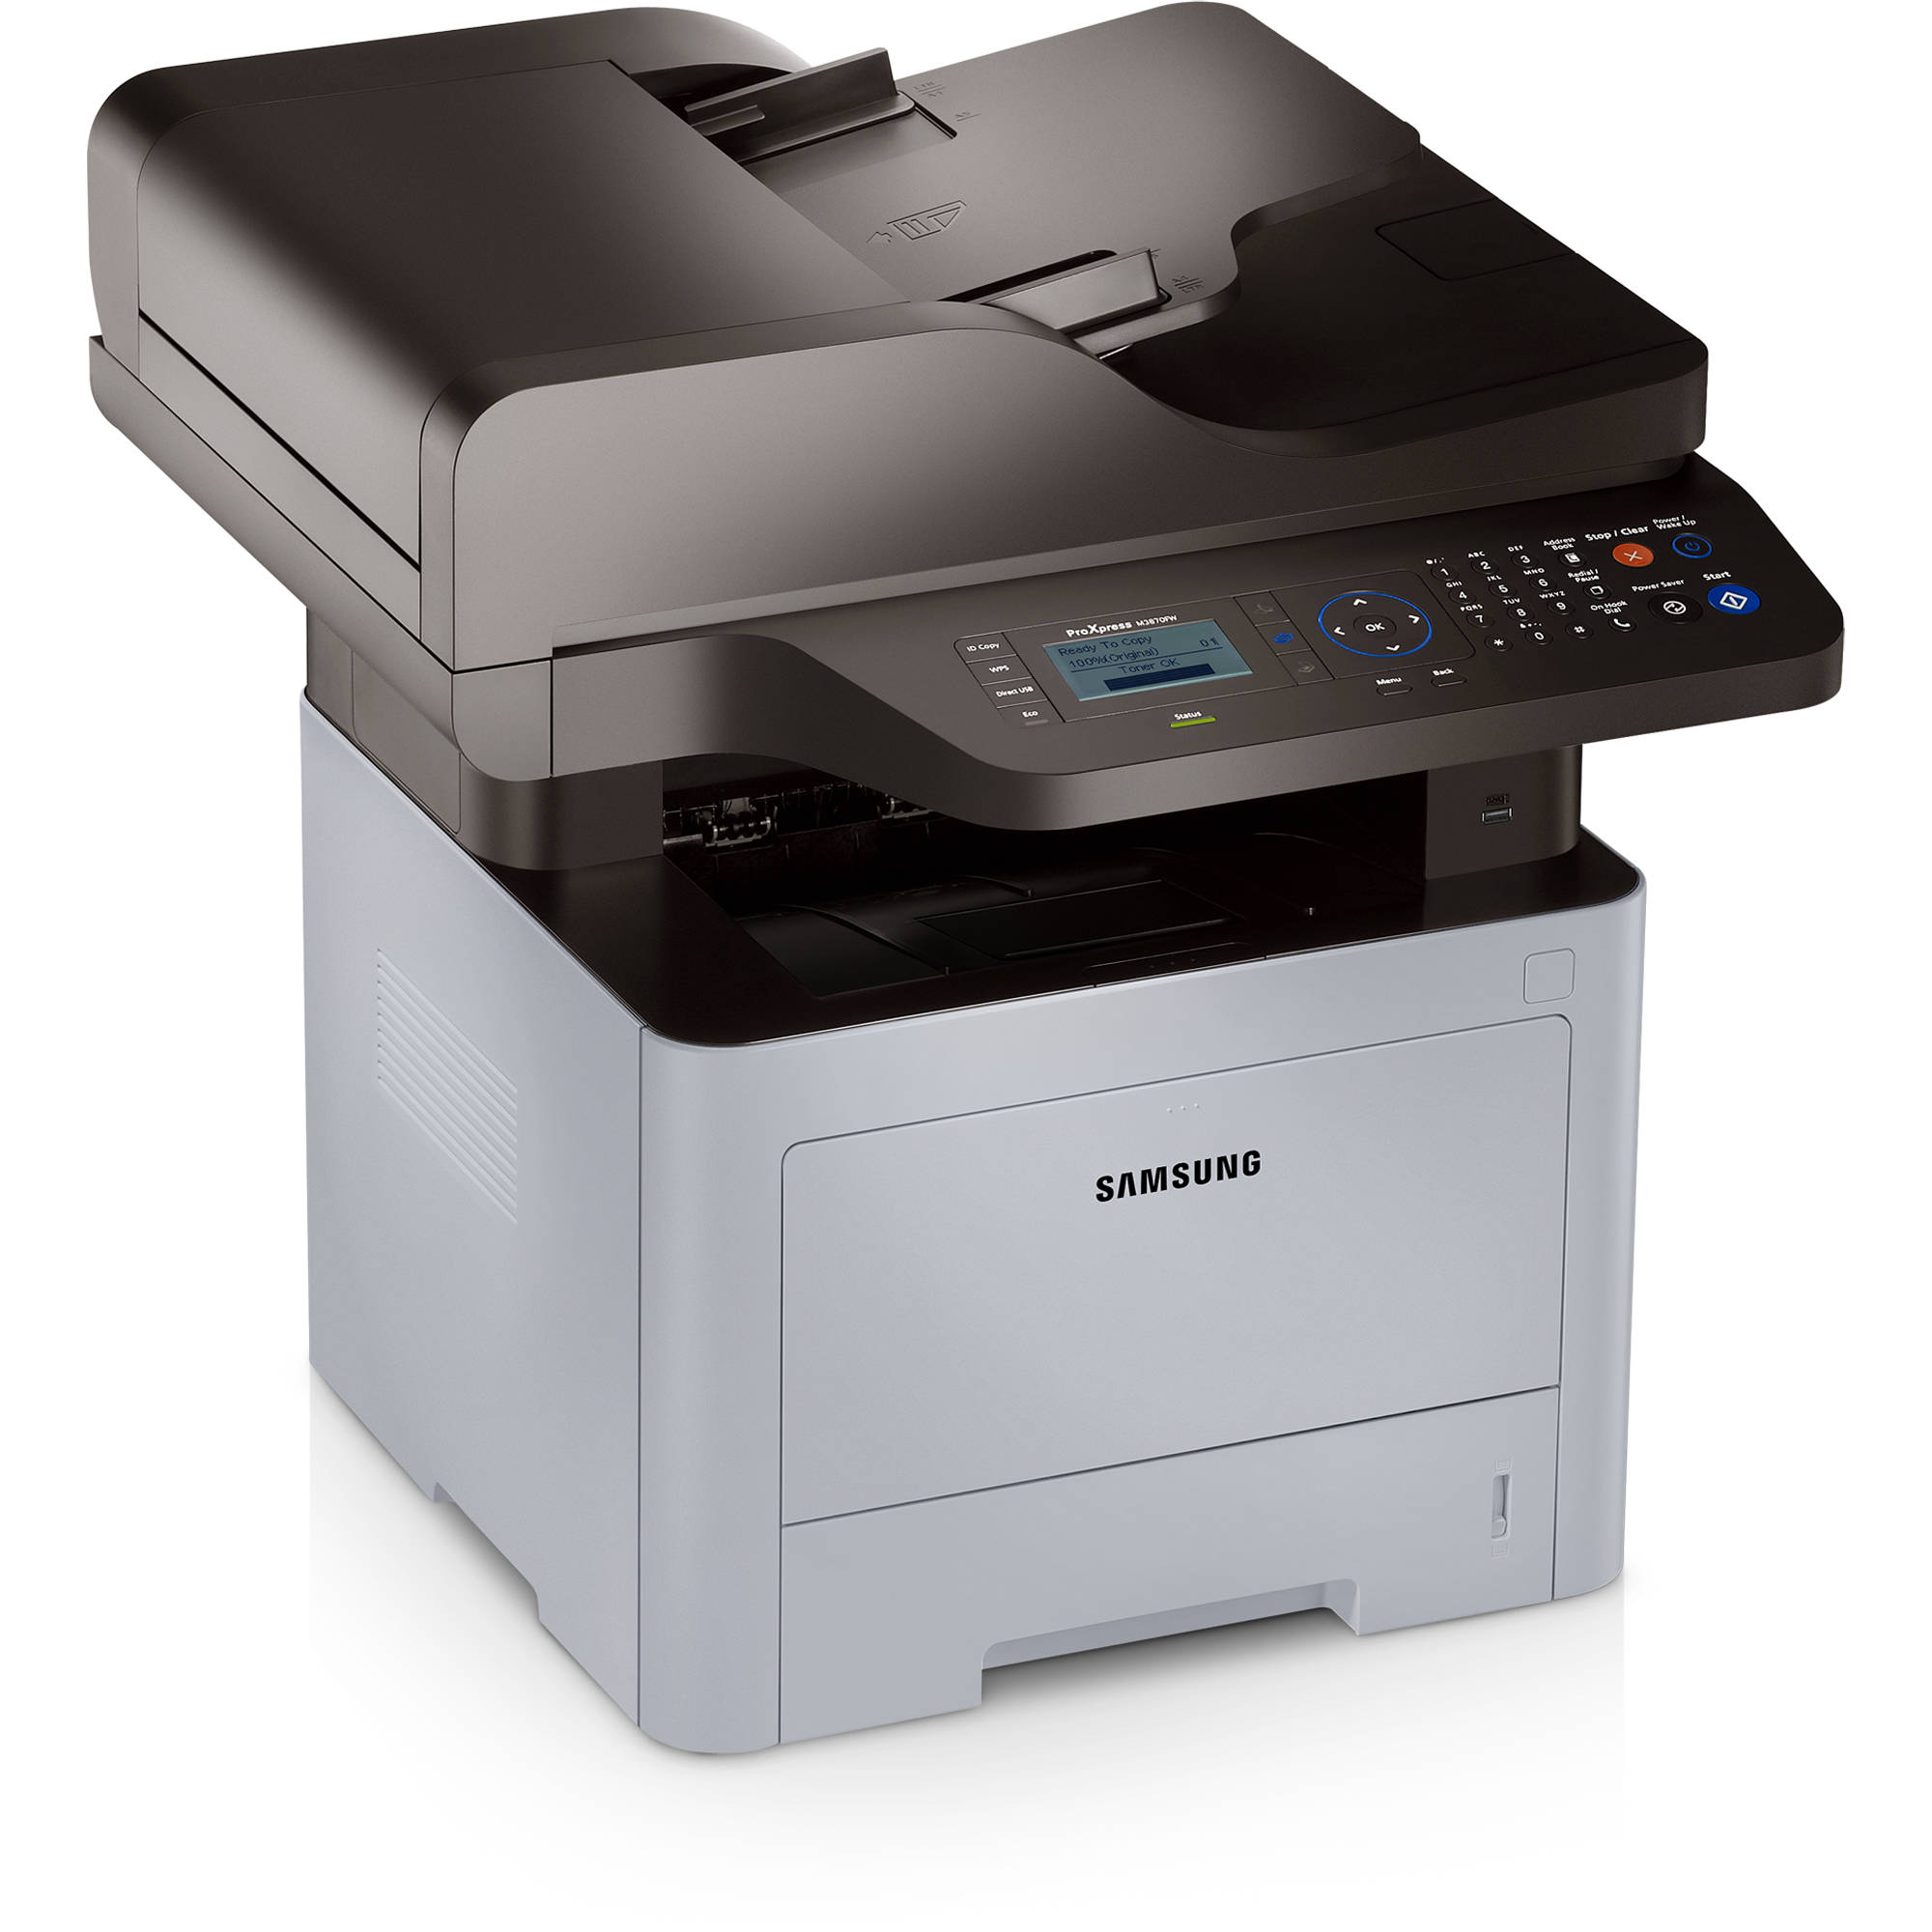 Samsung ProXpress M3870FW Monochrome All-in-One SL-M3870FW/XAA